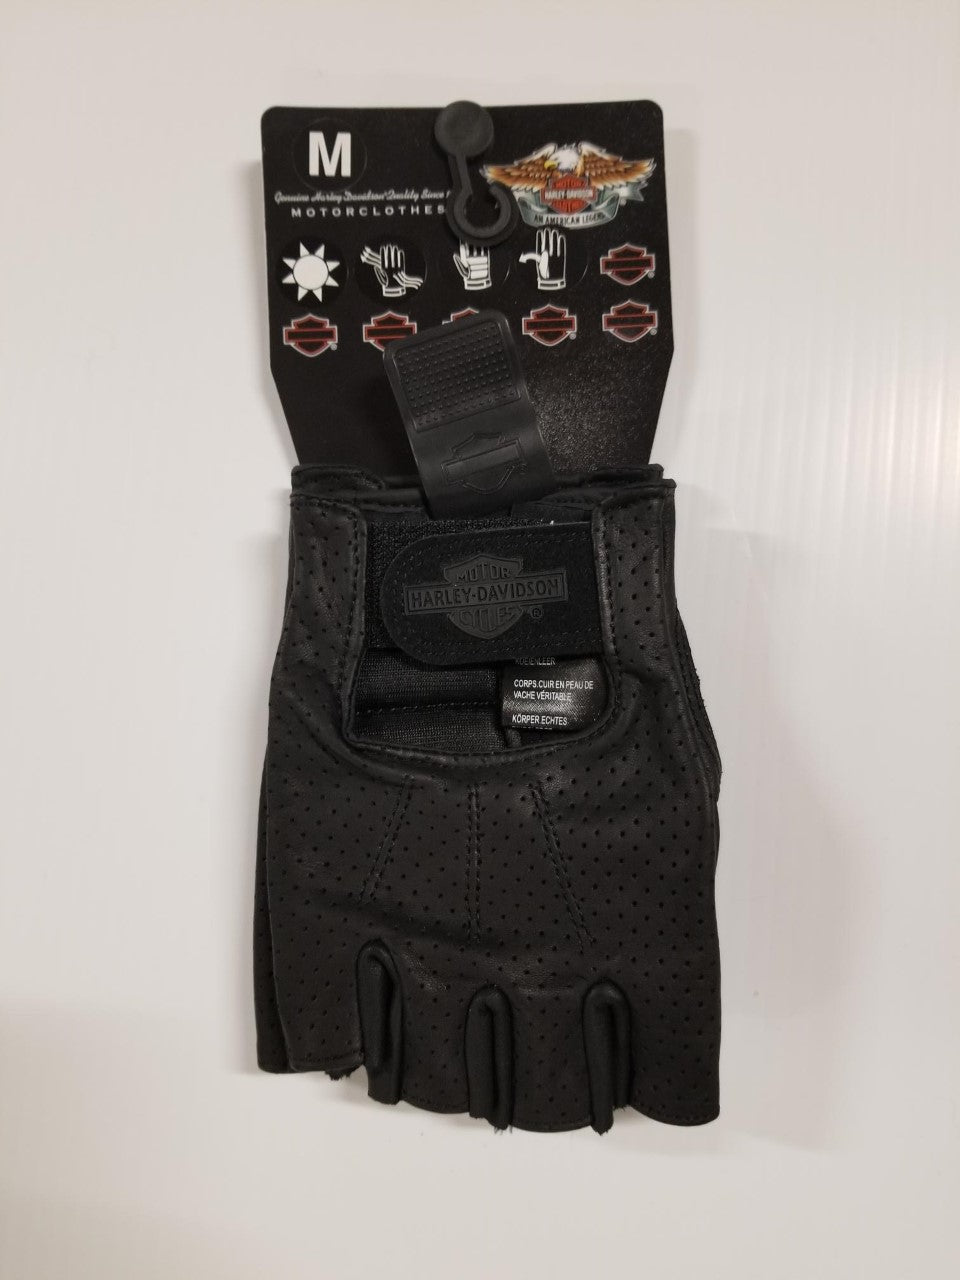 Harley-Davidson glove-open tip perforated